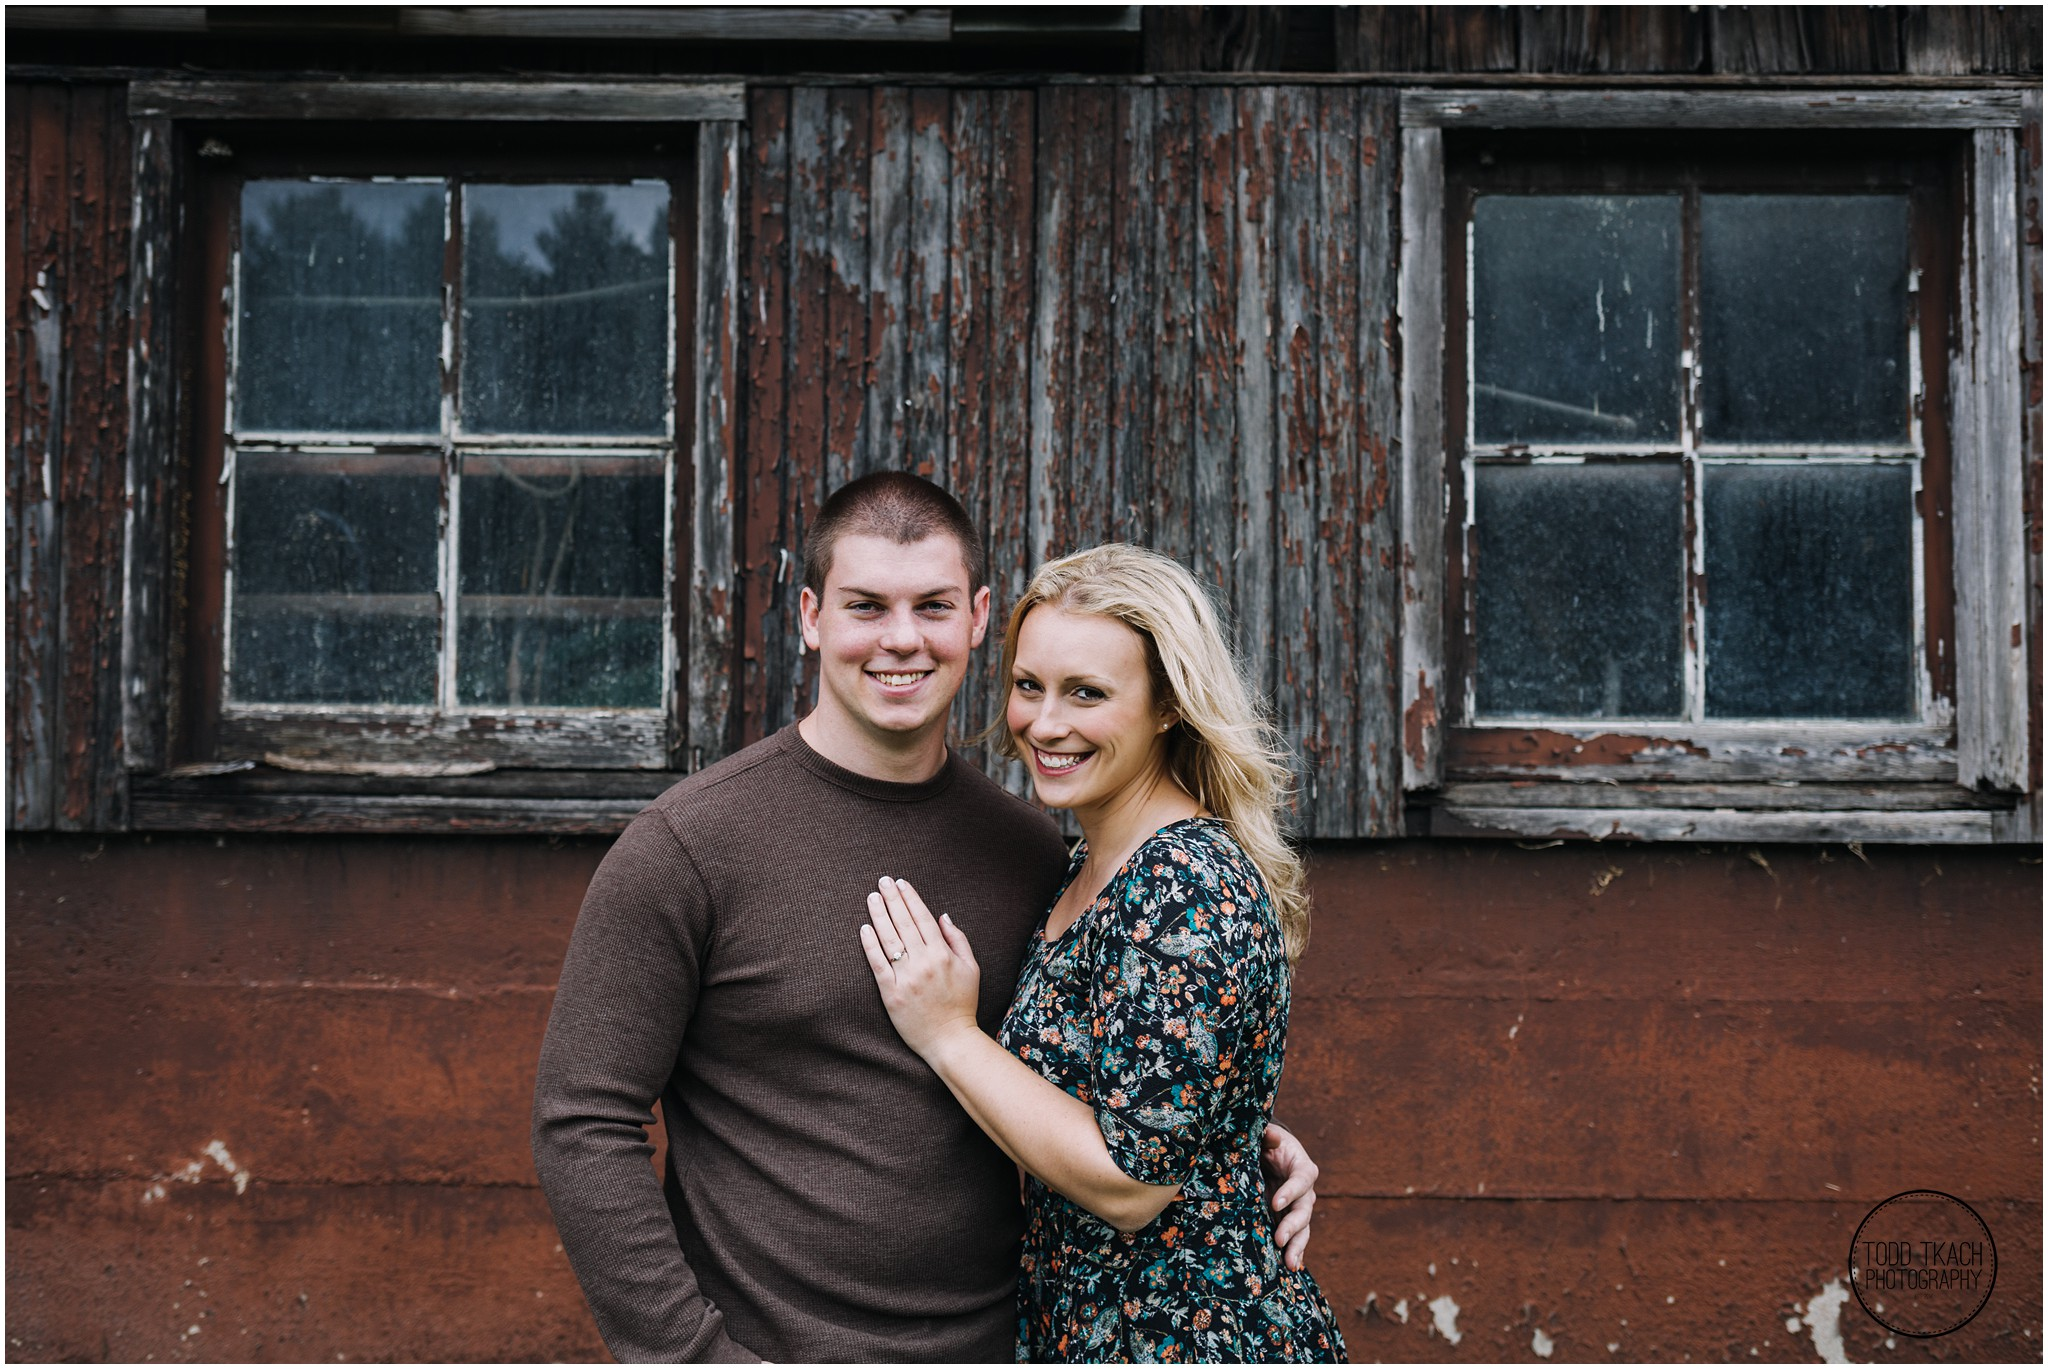 Christie & Scott - Rustic Portrait